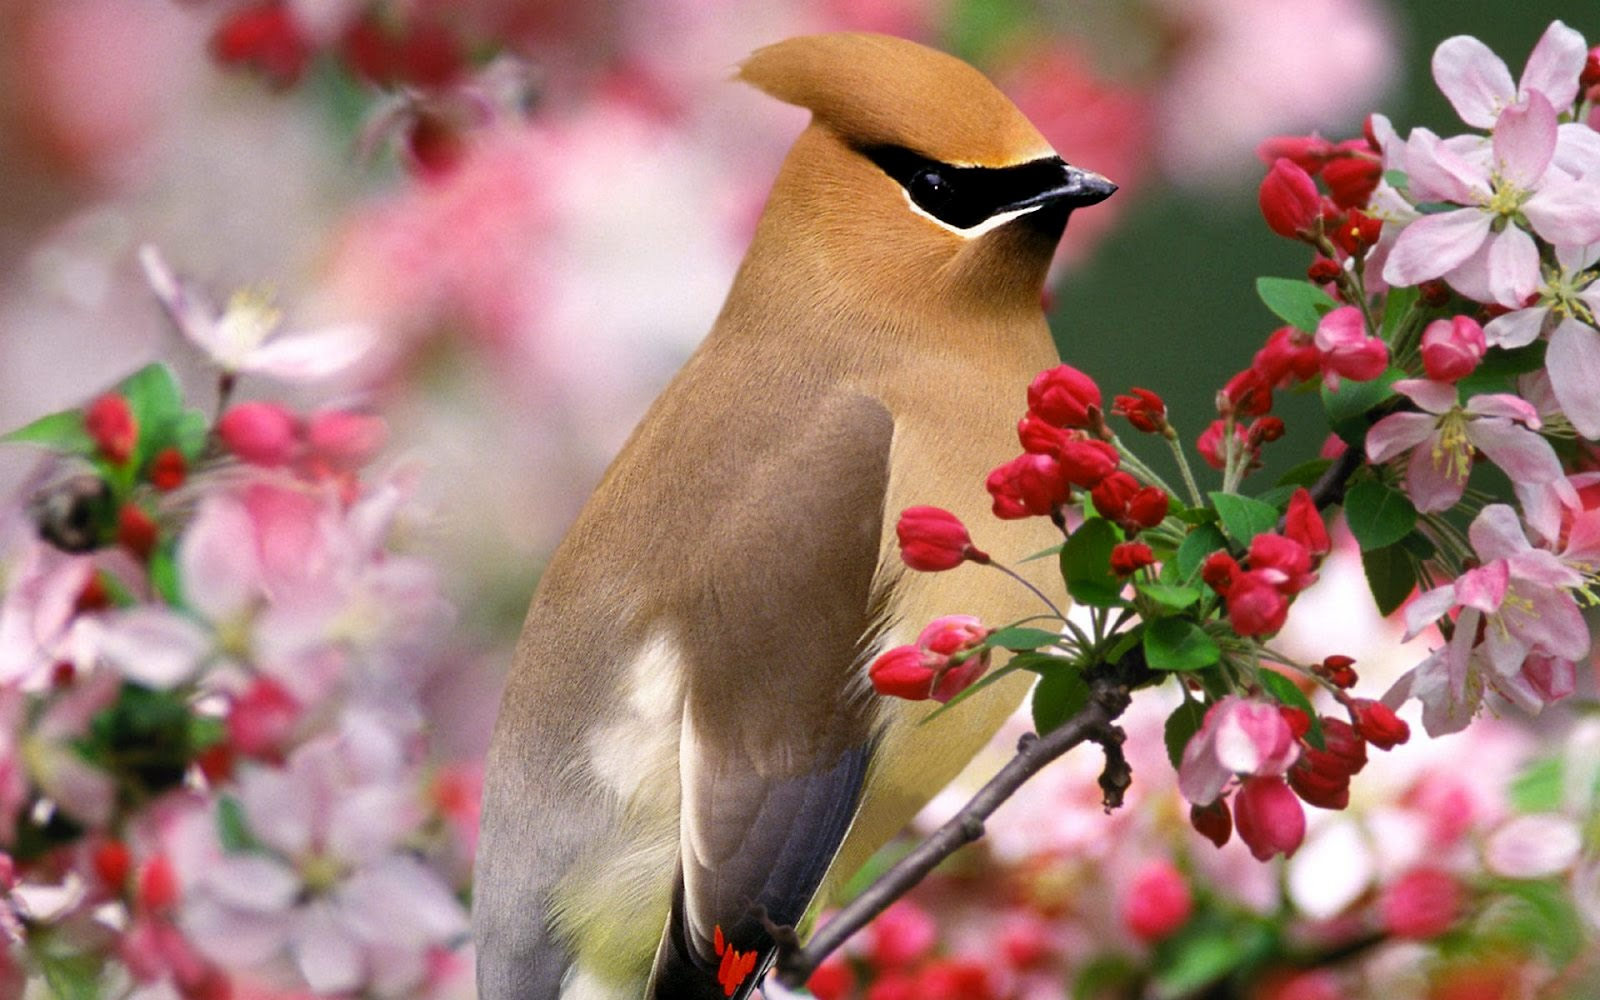 http://2.bp.blogspot.com/-HpGbsXhk4l0/T0ZzNXUNvaI/AAAAAAAAAVM/rgS0wICFRDY/s1600/Beautiful+Bird+And+Flower.jpg